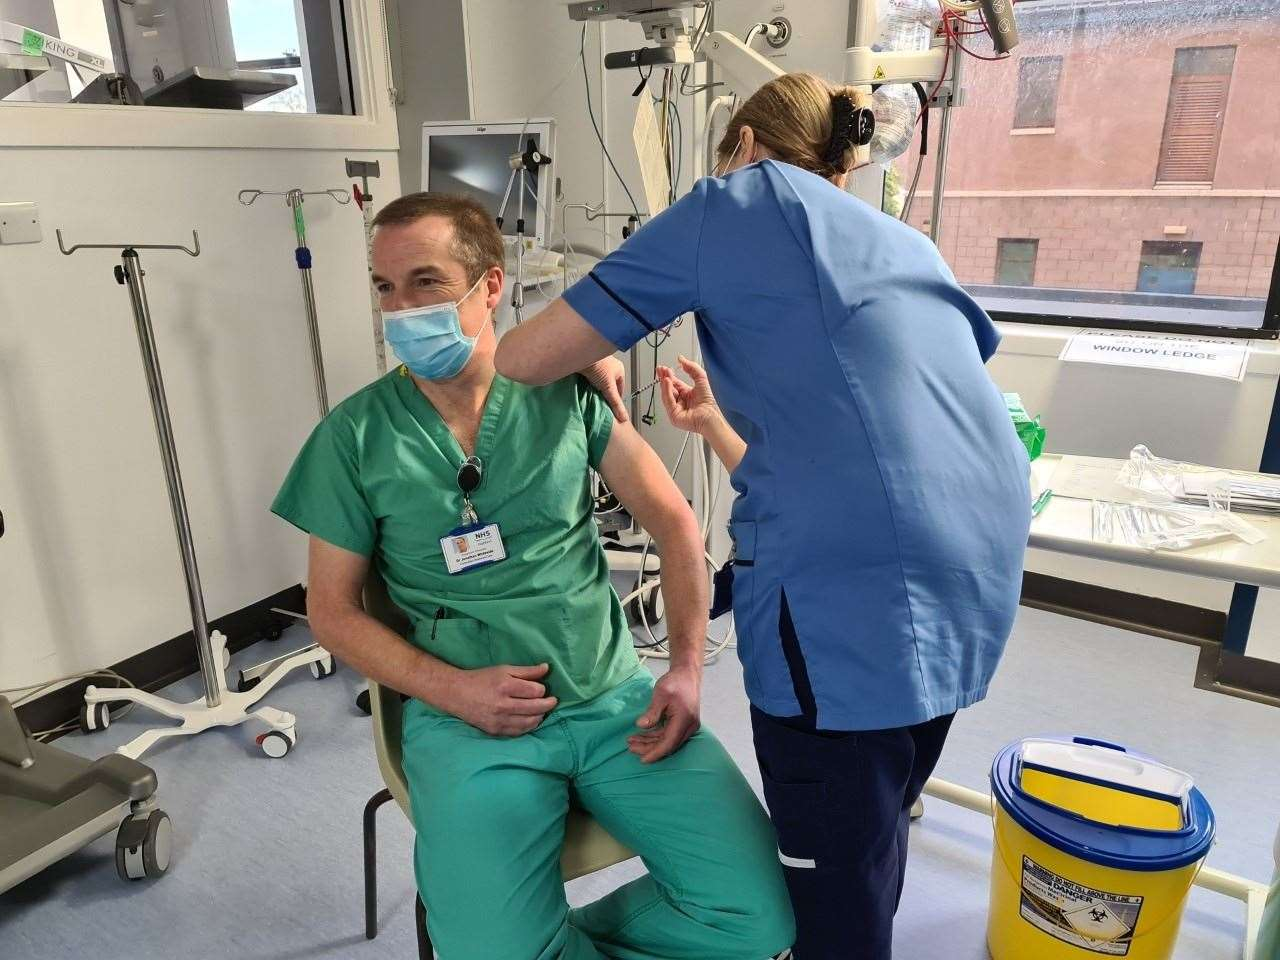 Dr Jonathan Whiteside, clinical lead for critical care with NHS Highland, was the first person to be vaccinated in the NHS Highland area.